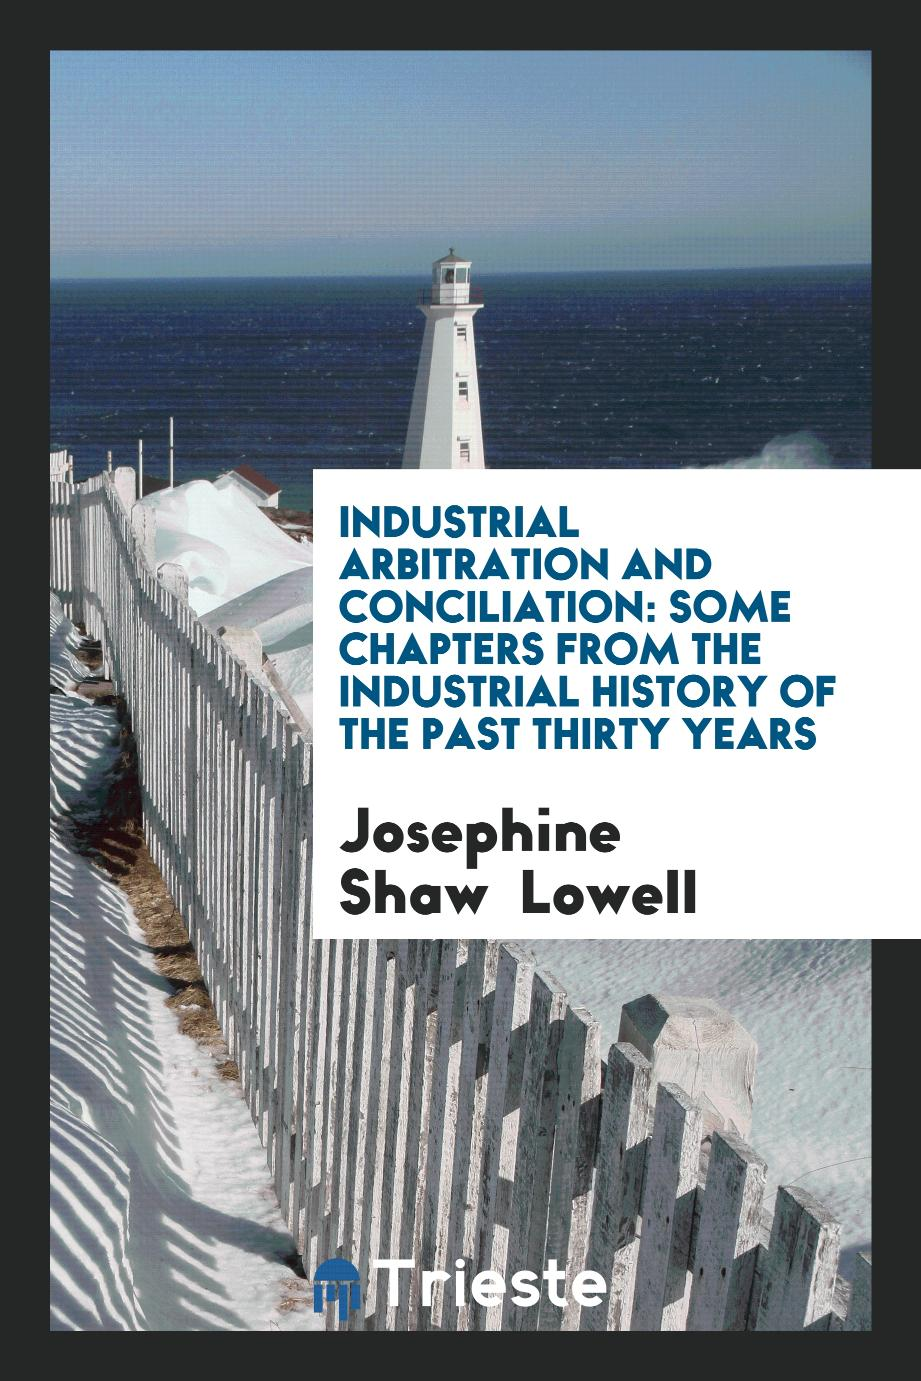 Industrial Arbitration and Conciliation: Some Chapters from the Industrial History of the past Thirty Years